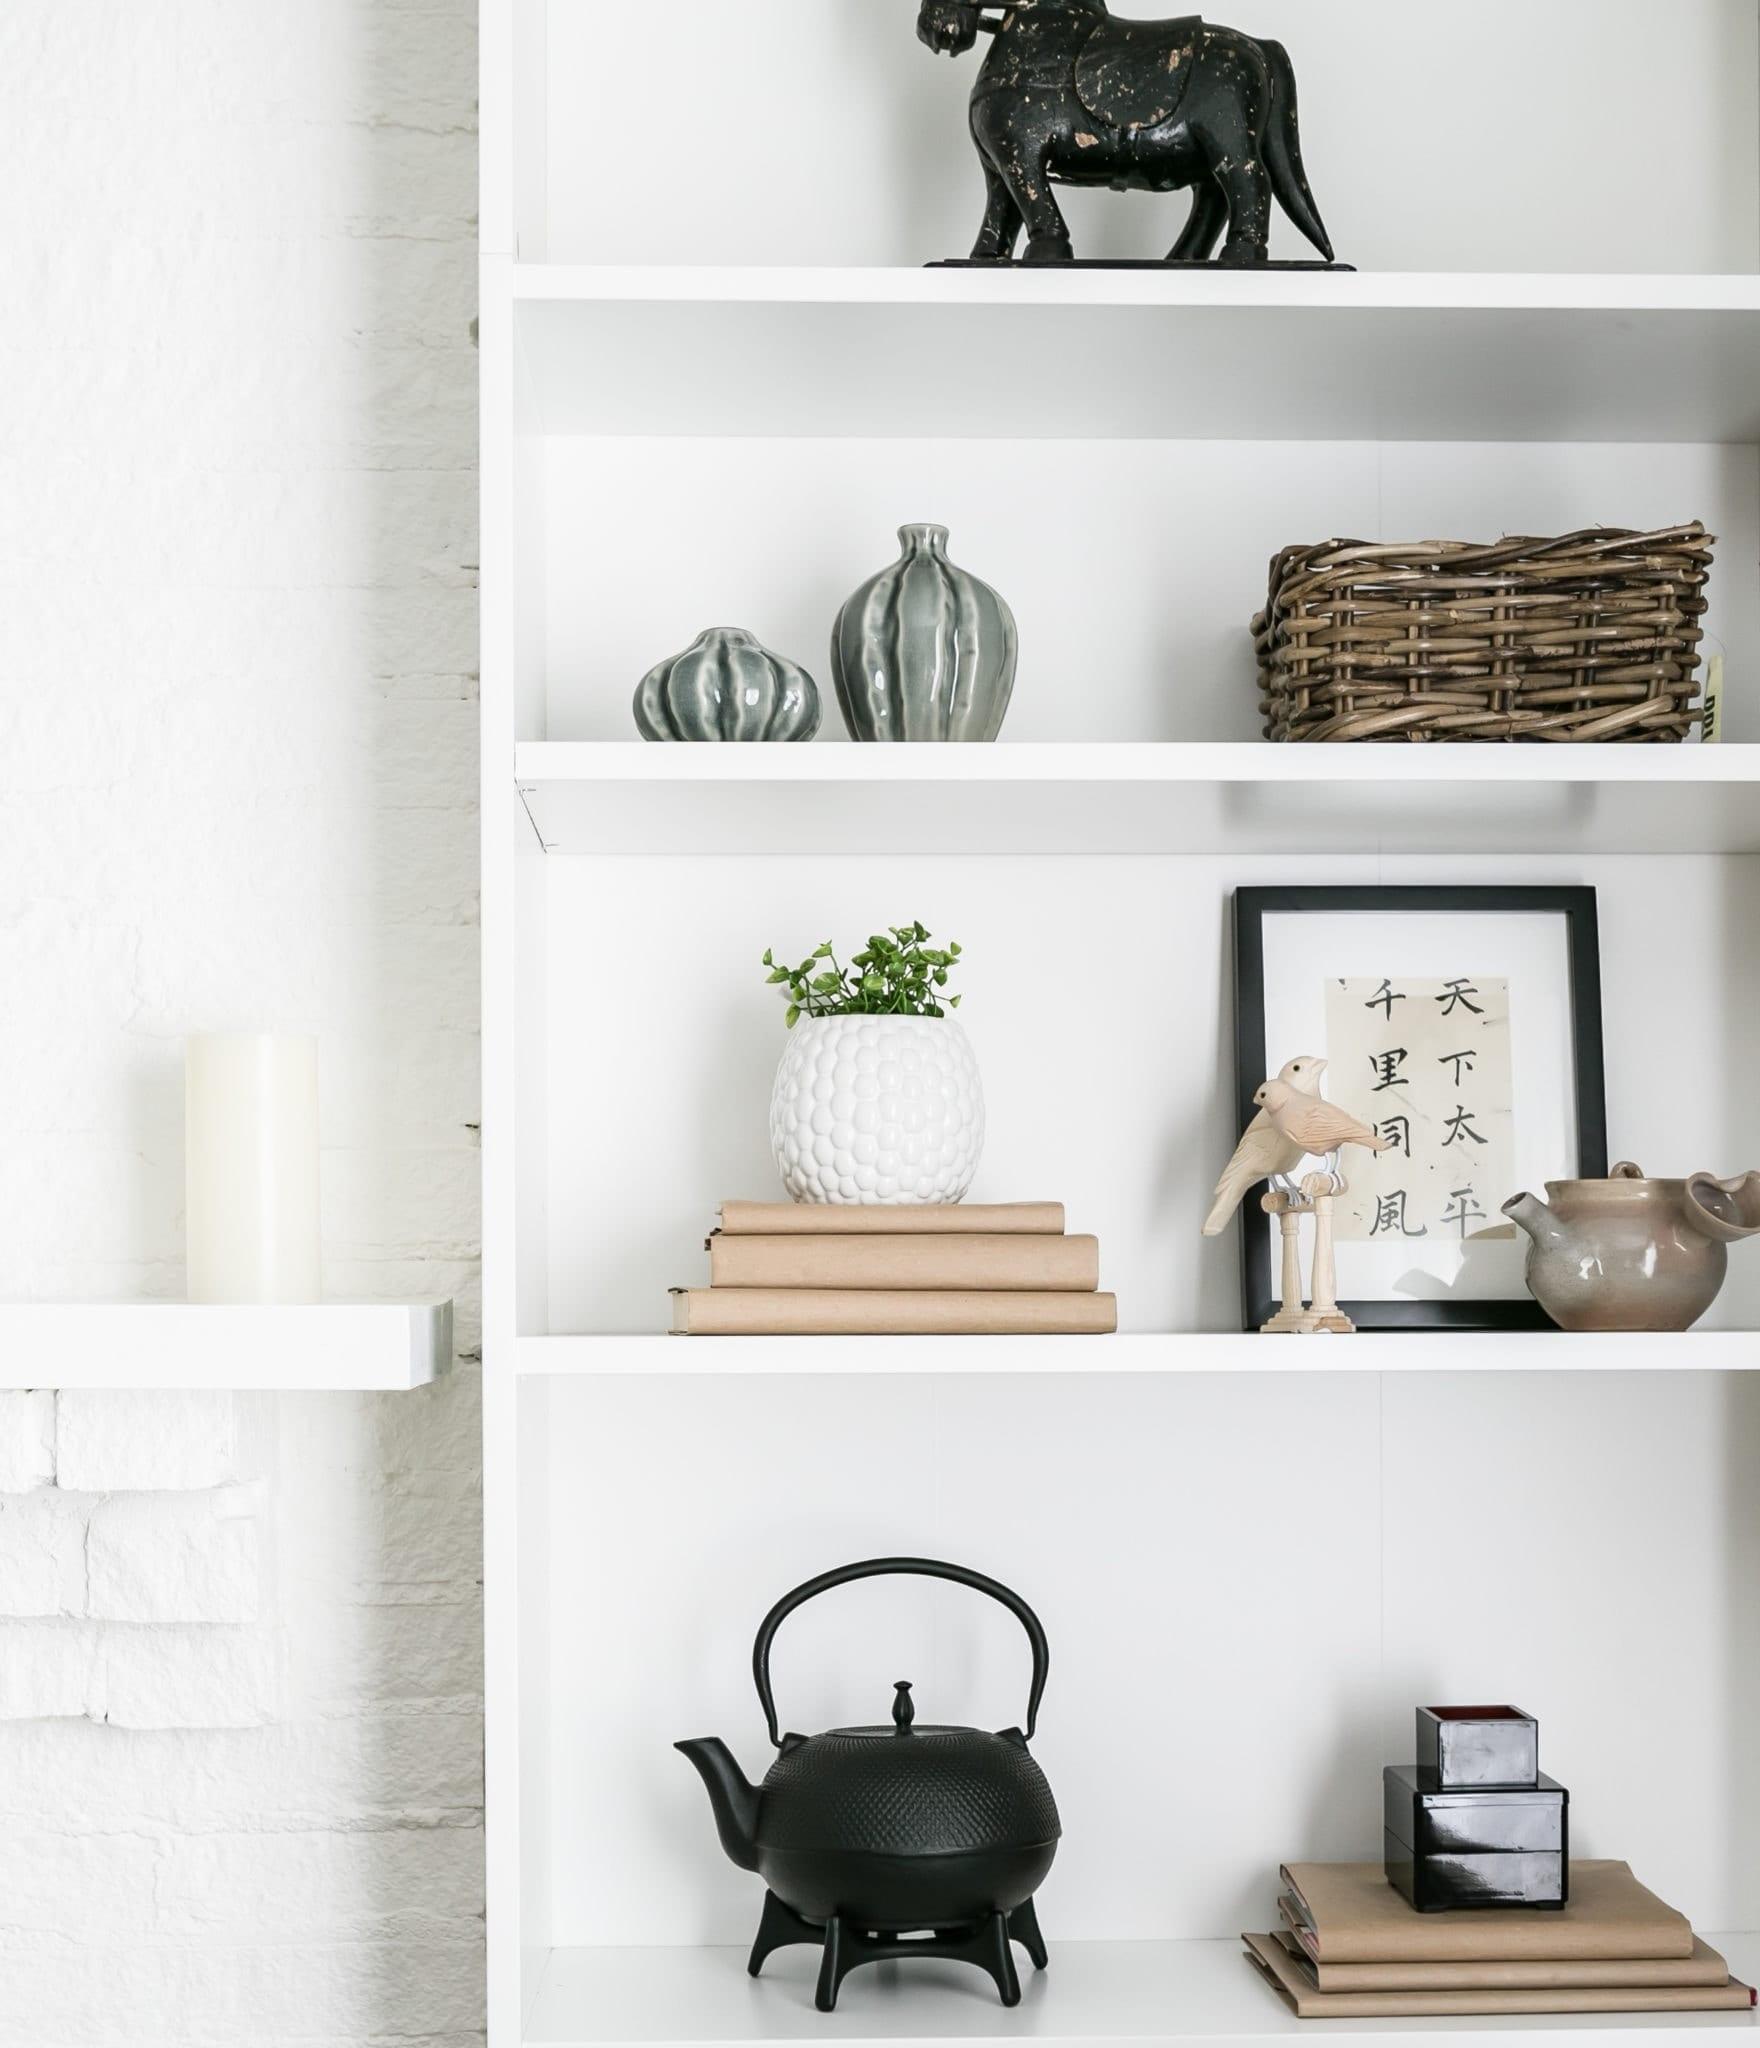 An example of built-in shelves that are sturdy, stylish and dependable.